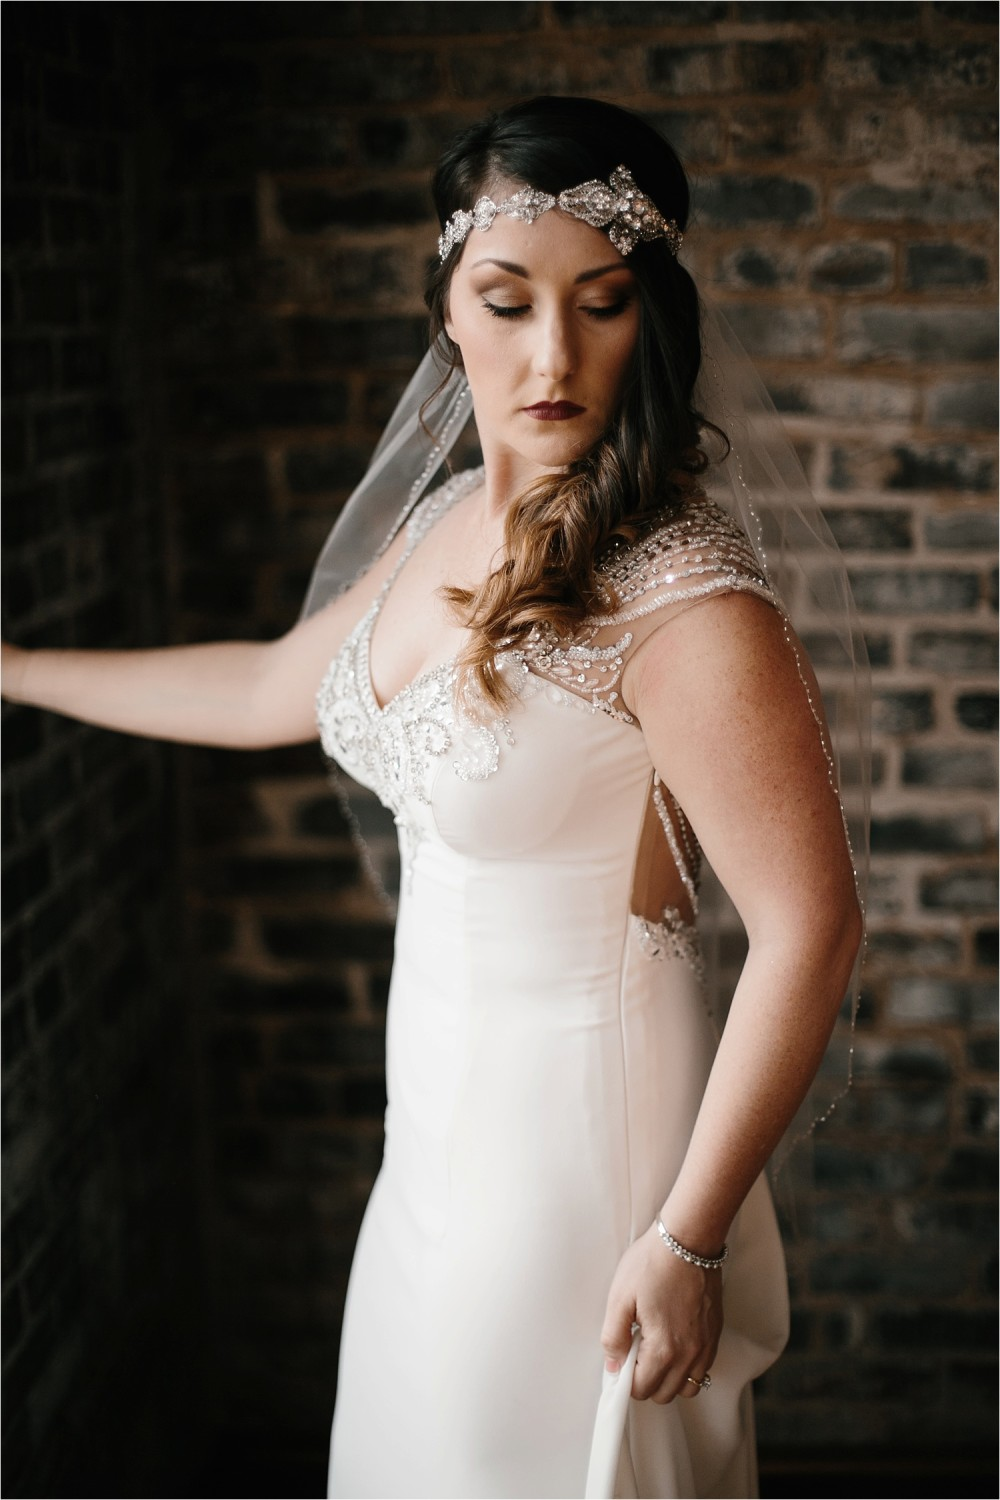 whittney-drew-__-an-intimate-wine-and-navy-wedding-in-an-industrial-venue-at-loft-123-in-paris-tx-by-north-texas-wedding-photographer-rachel-meagan-photography-_-020